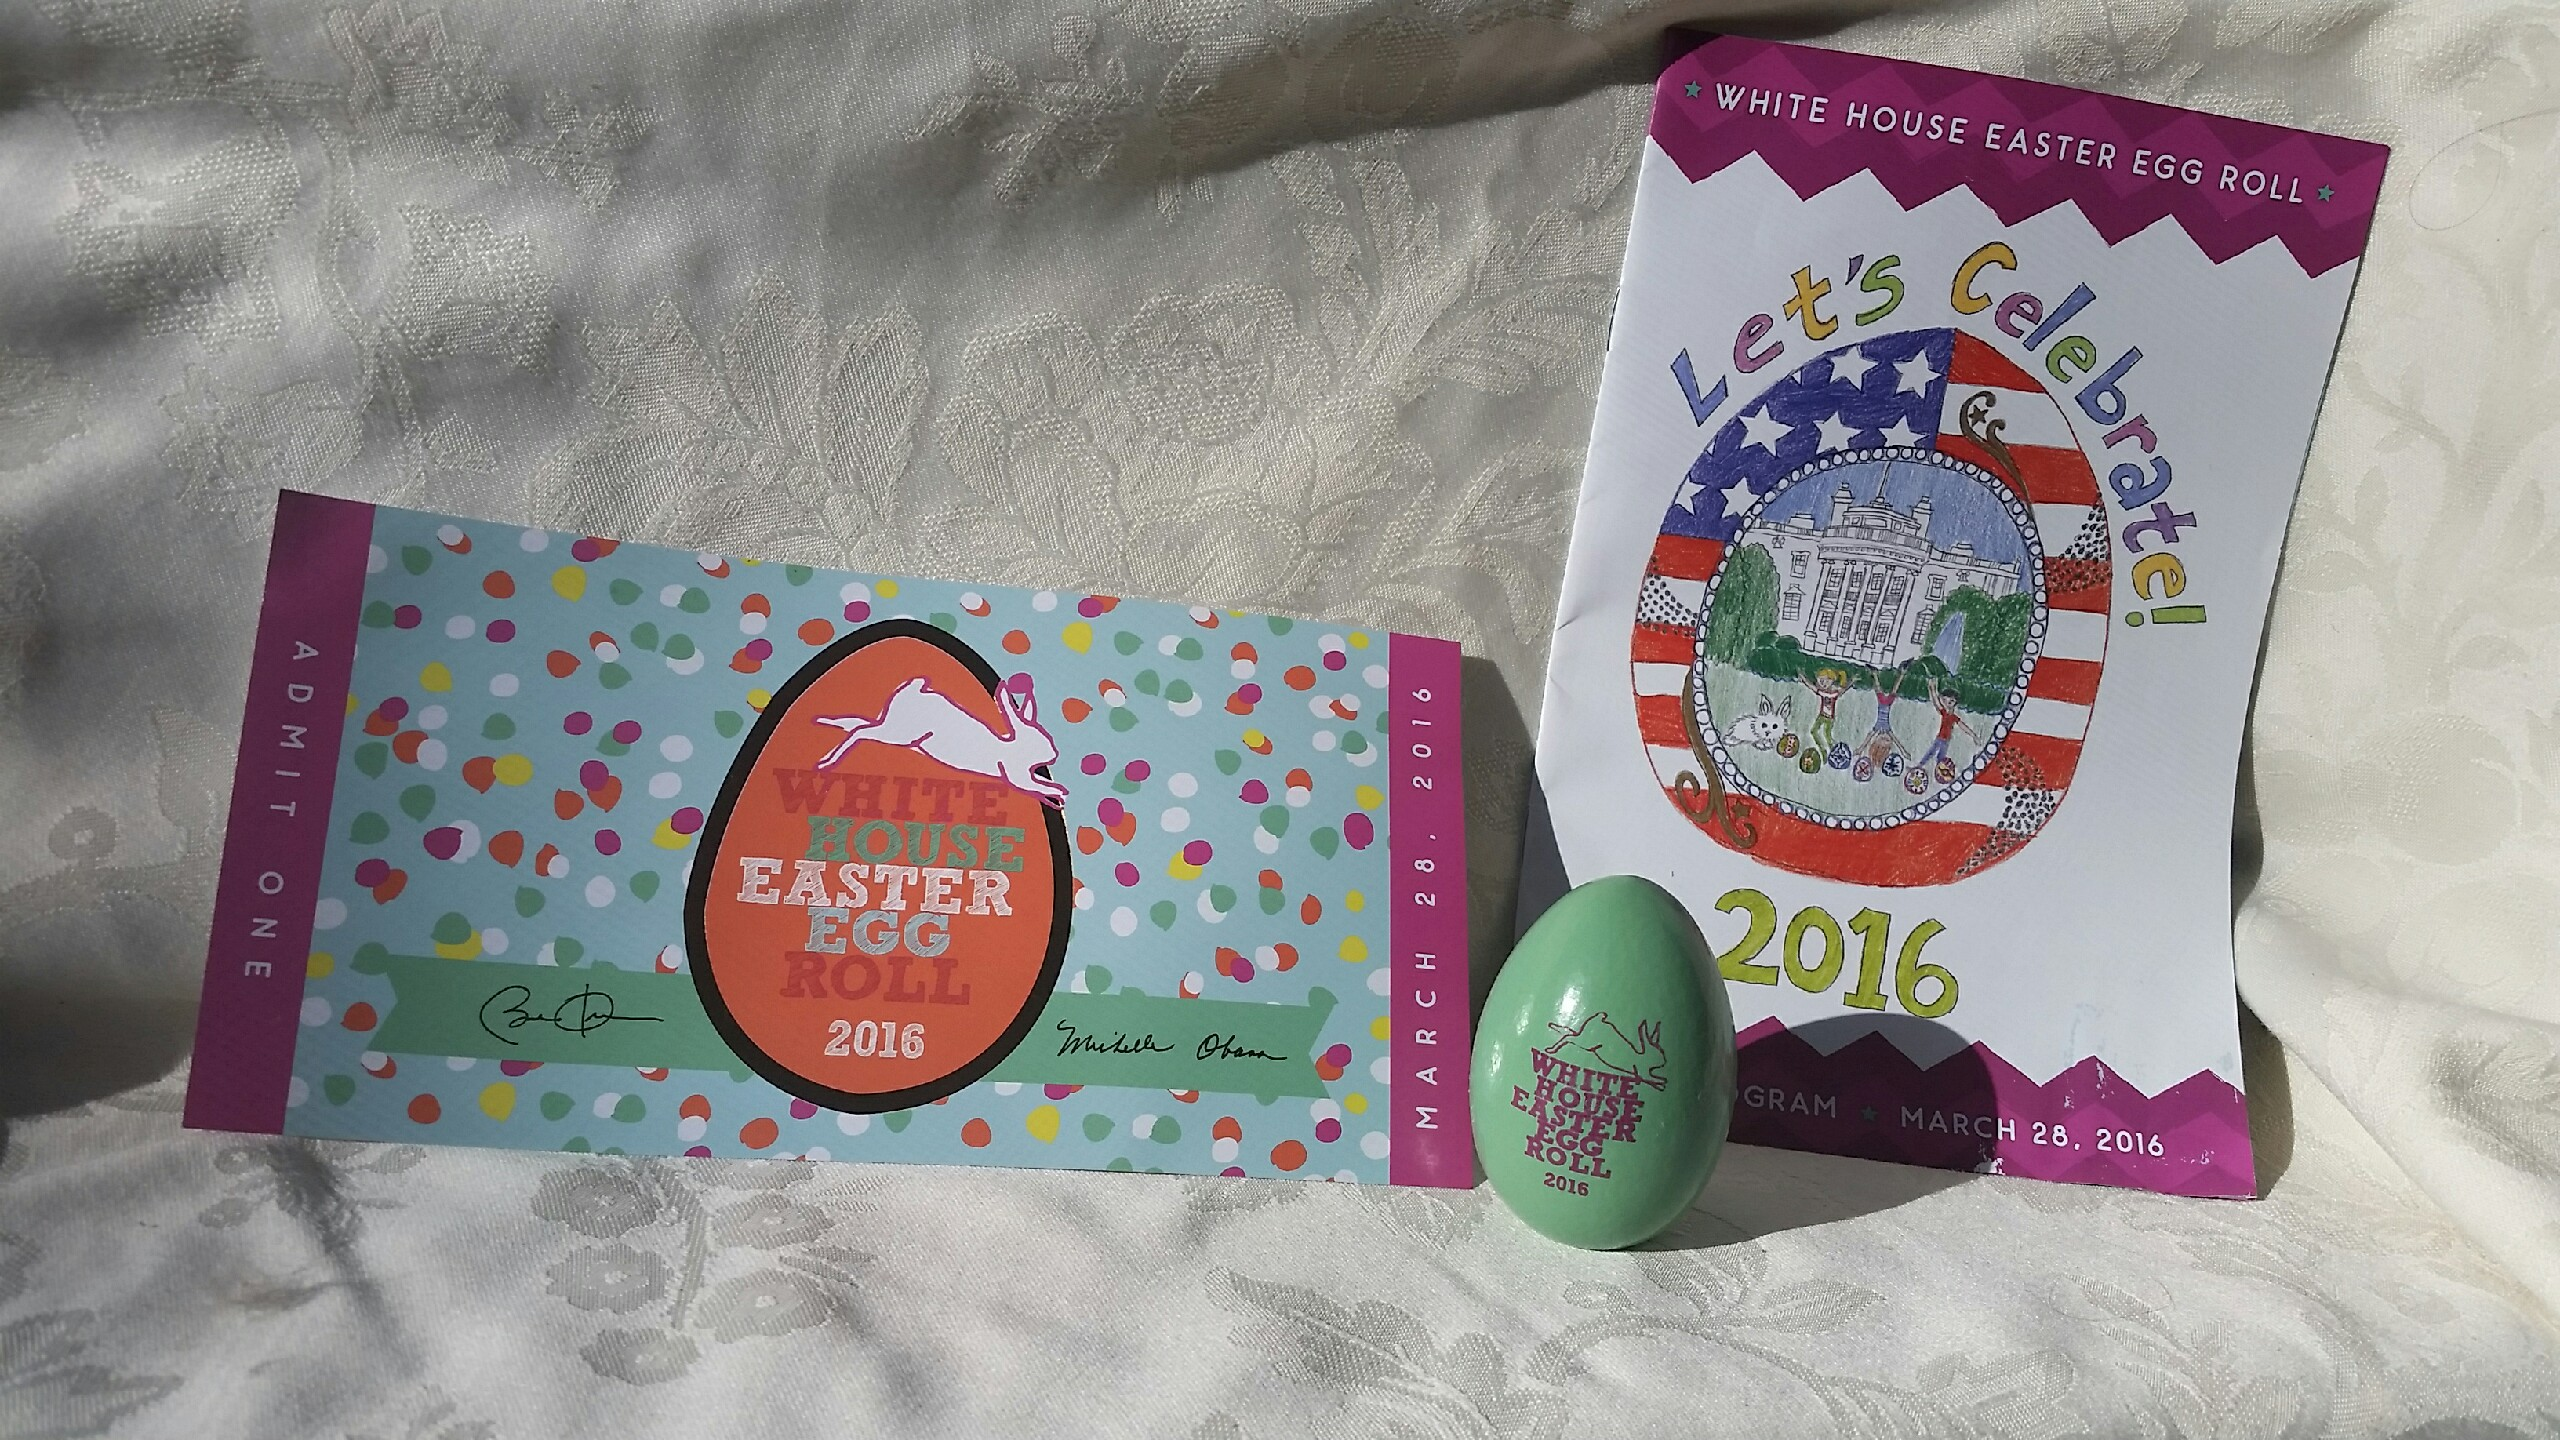 White House Easter Egg Roll souvenirs